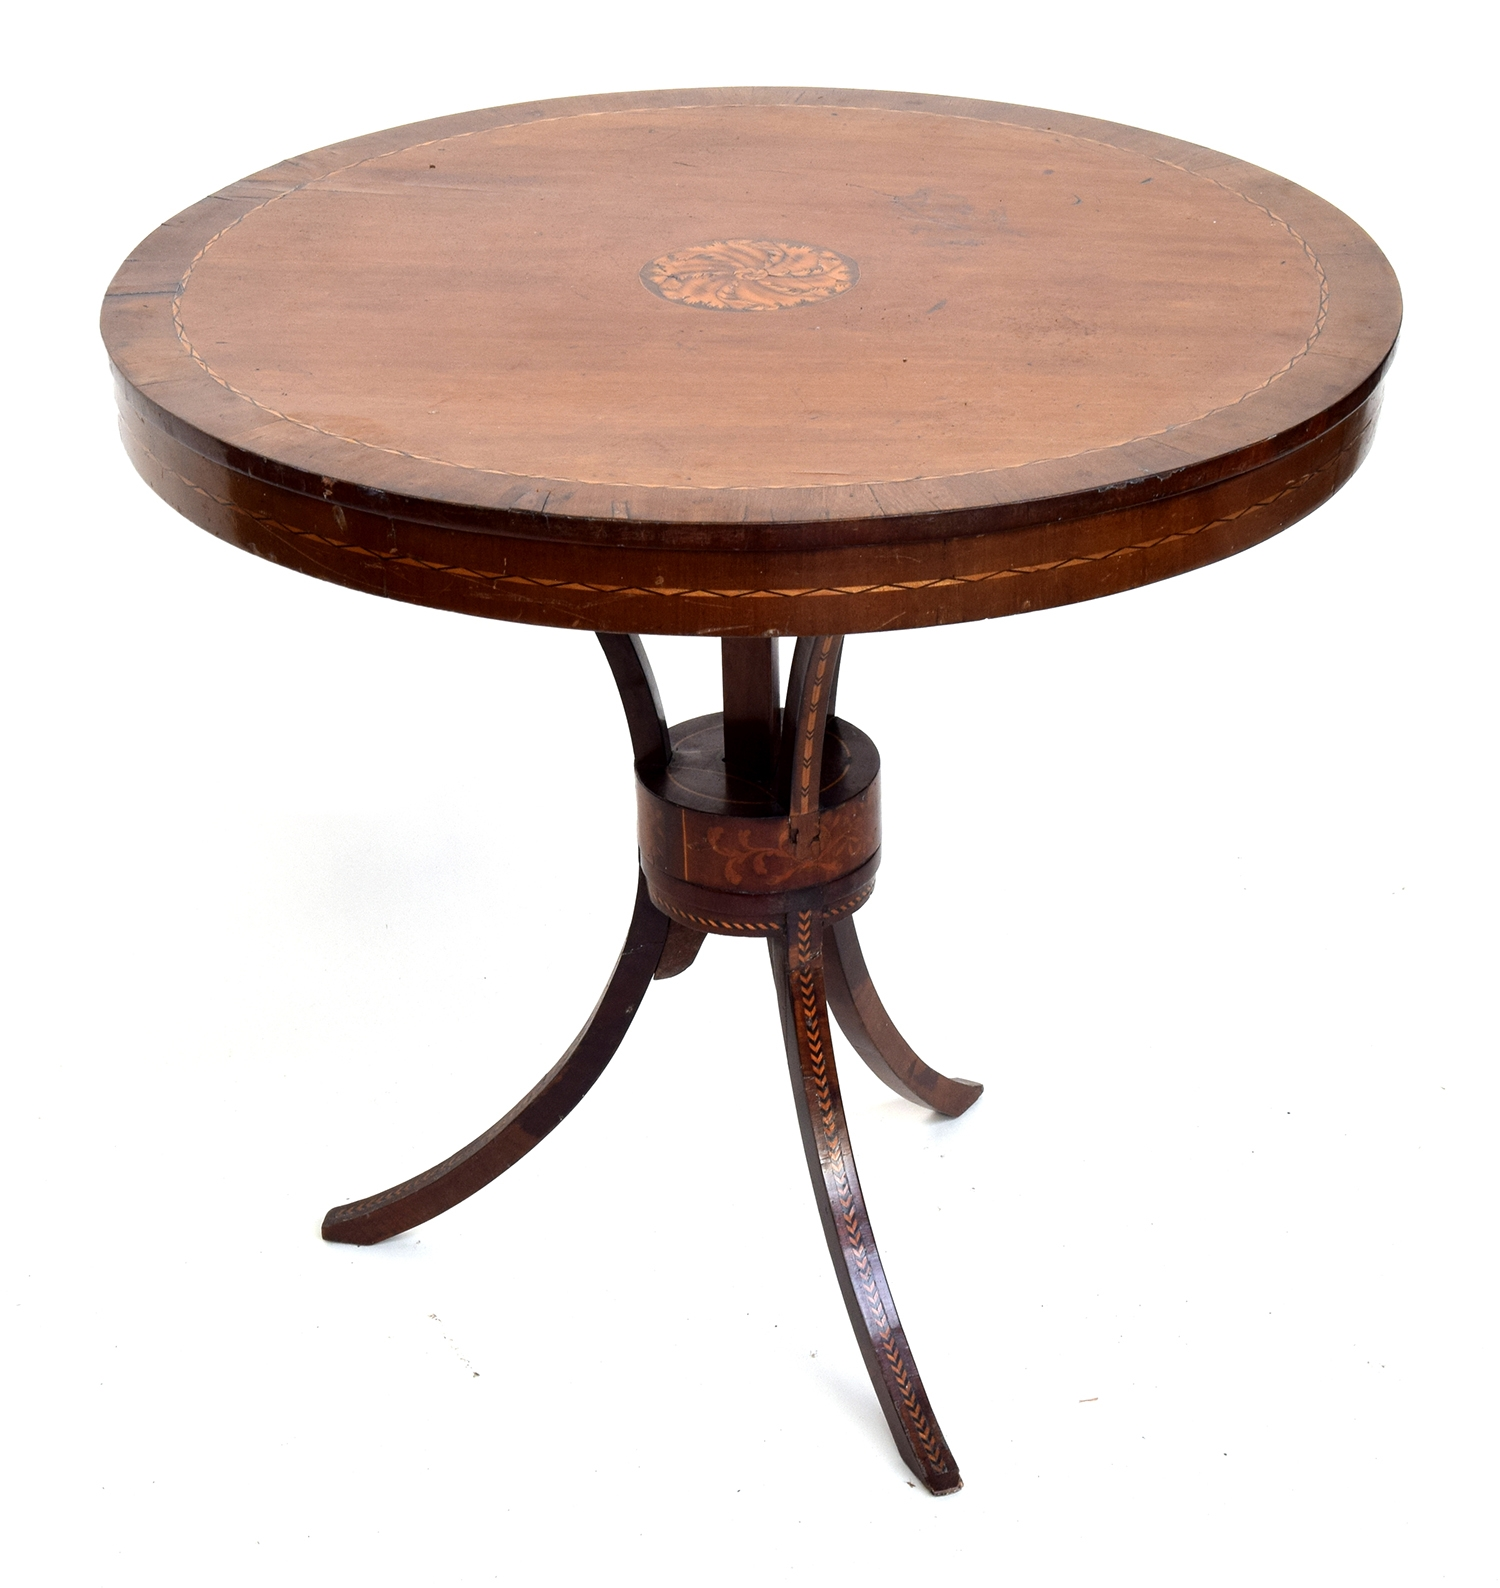 A Regency mahogany and marquetry centre table, on swept tripod base, intricate foliate central - Image 2 of 2